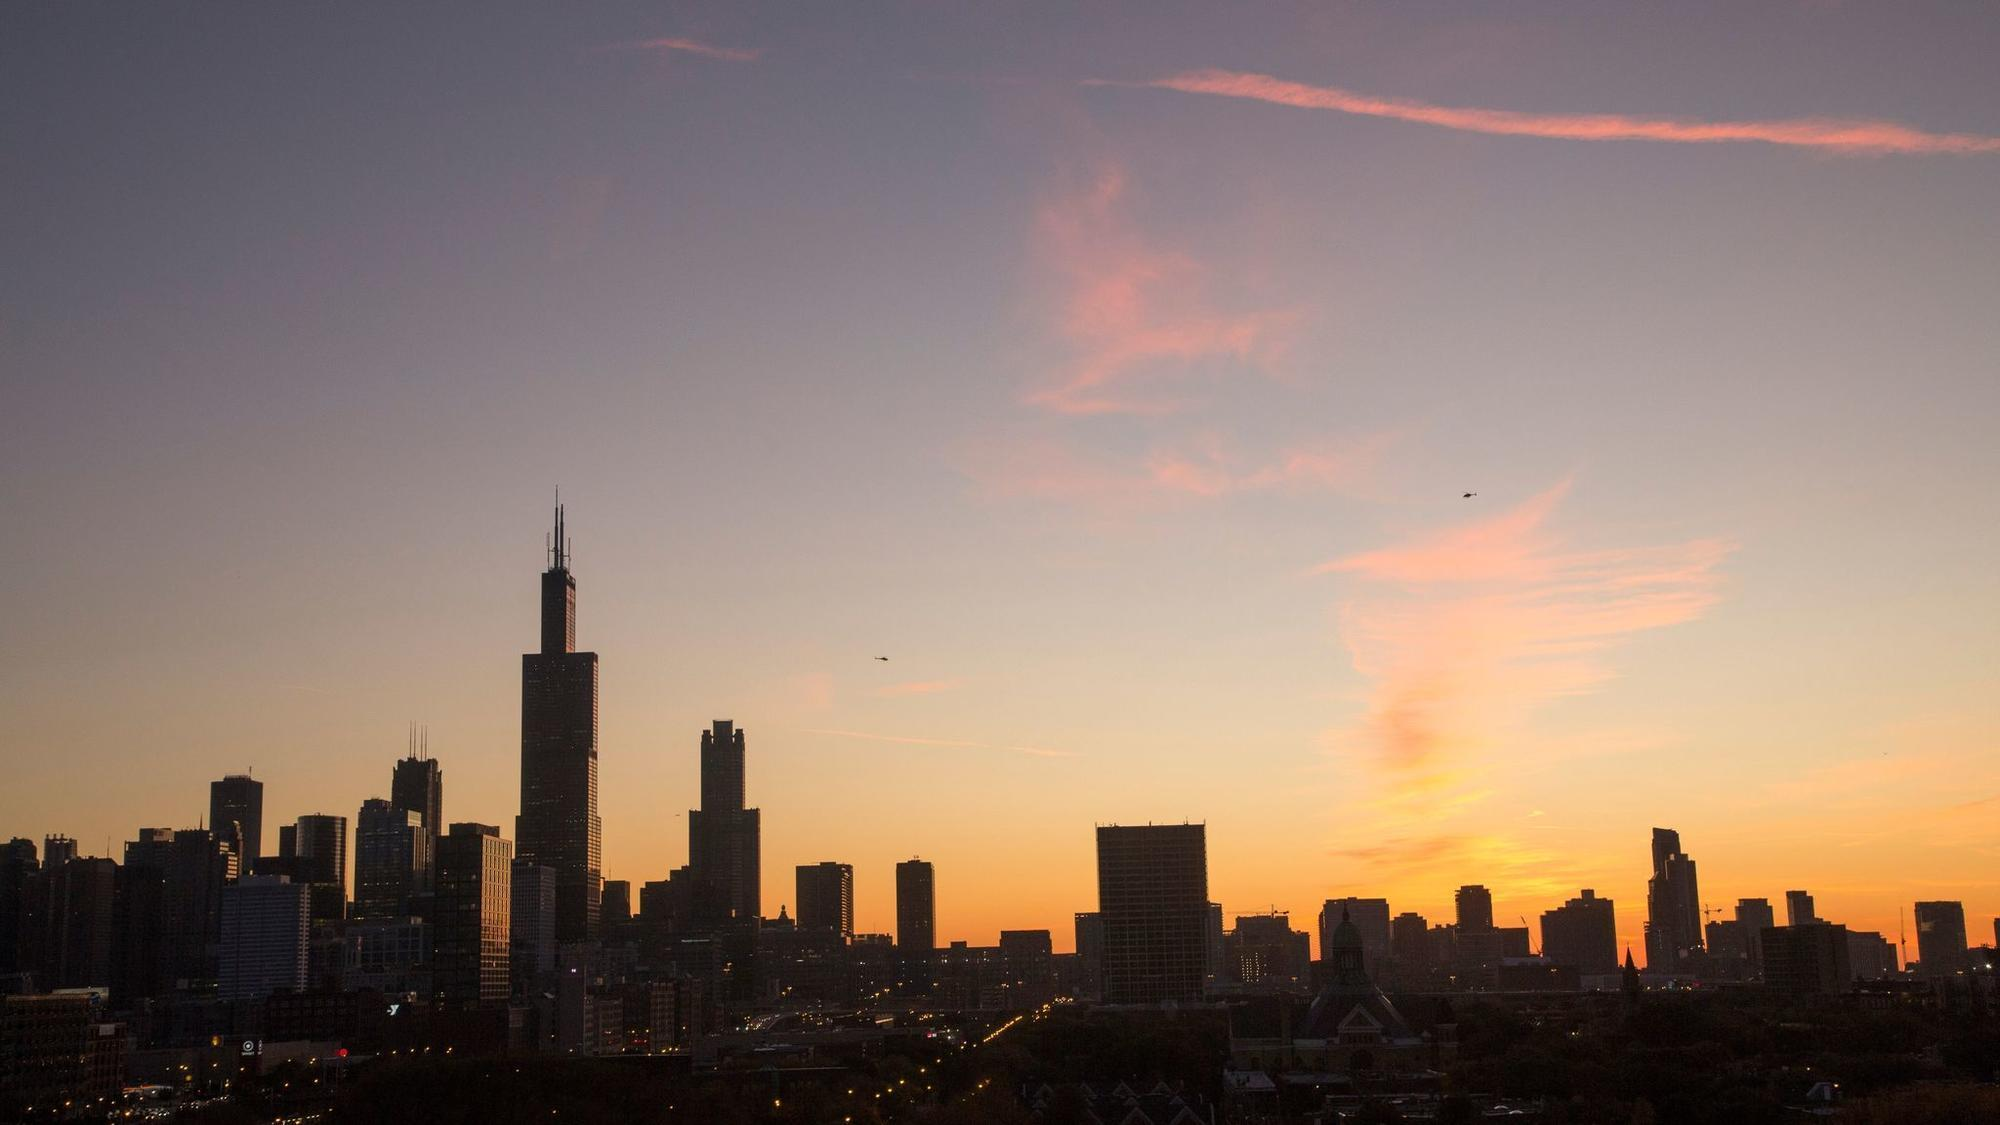 Chicago area adds jobs as local unemployment rate falls below 5% for first time in 10 years